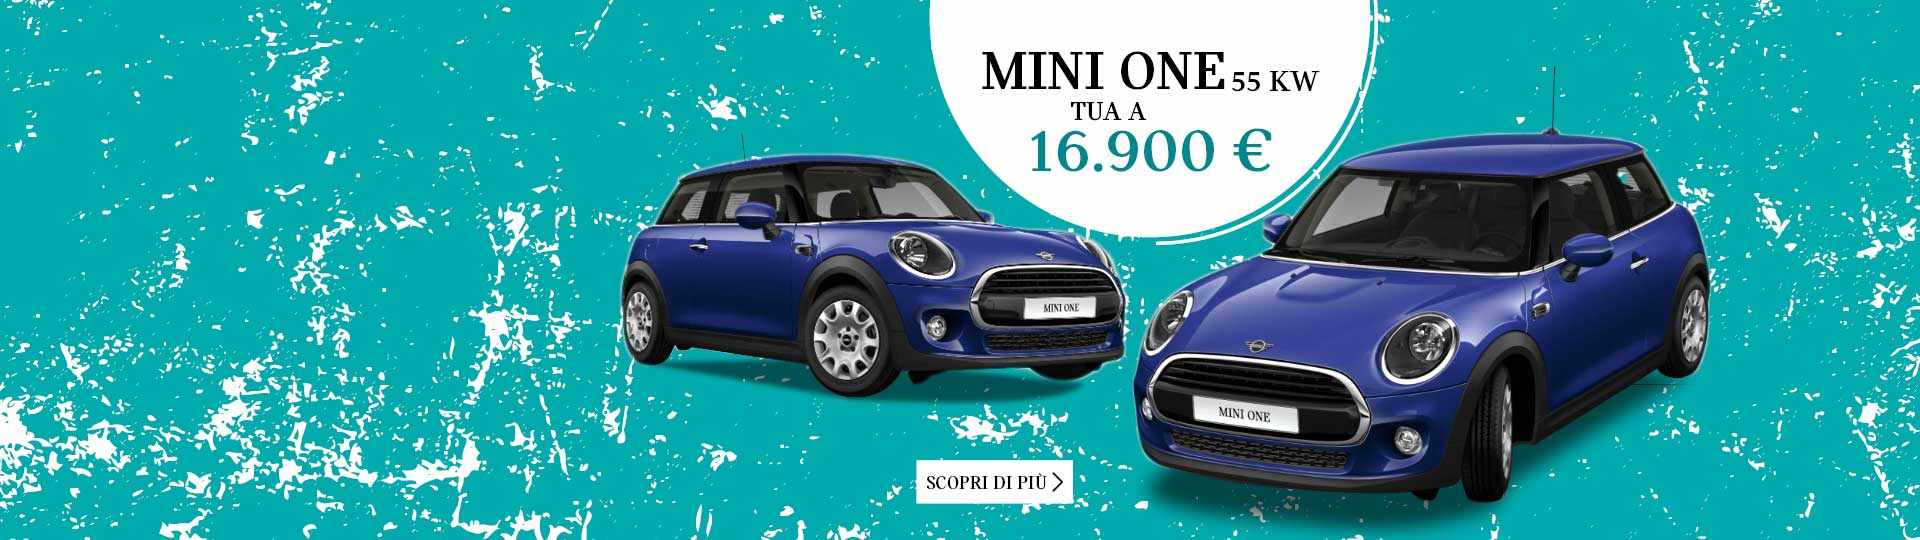 NEW_MINI-one-55-Kw-min.jpg